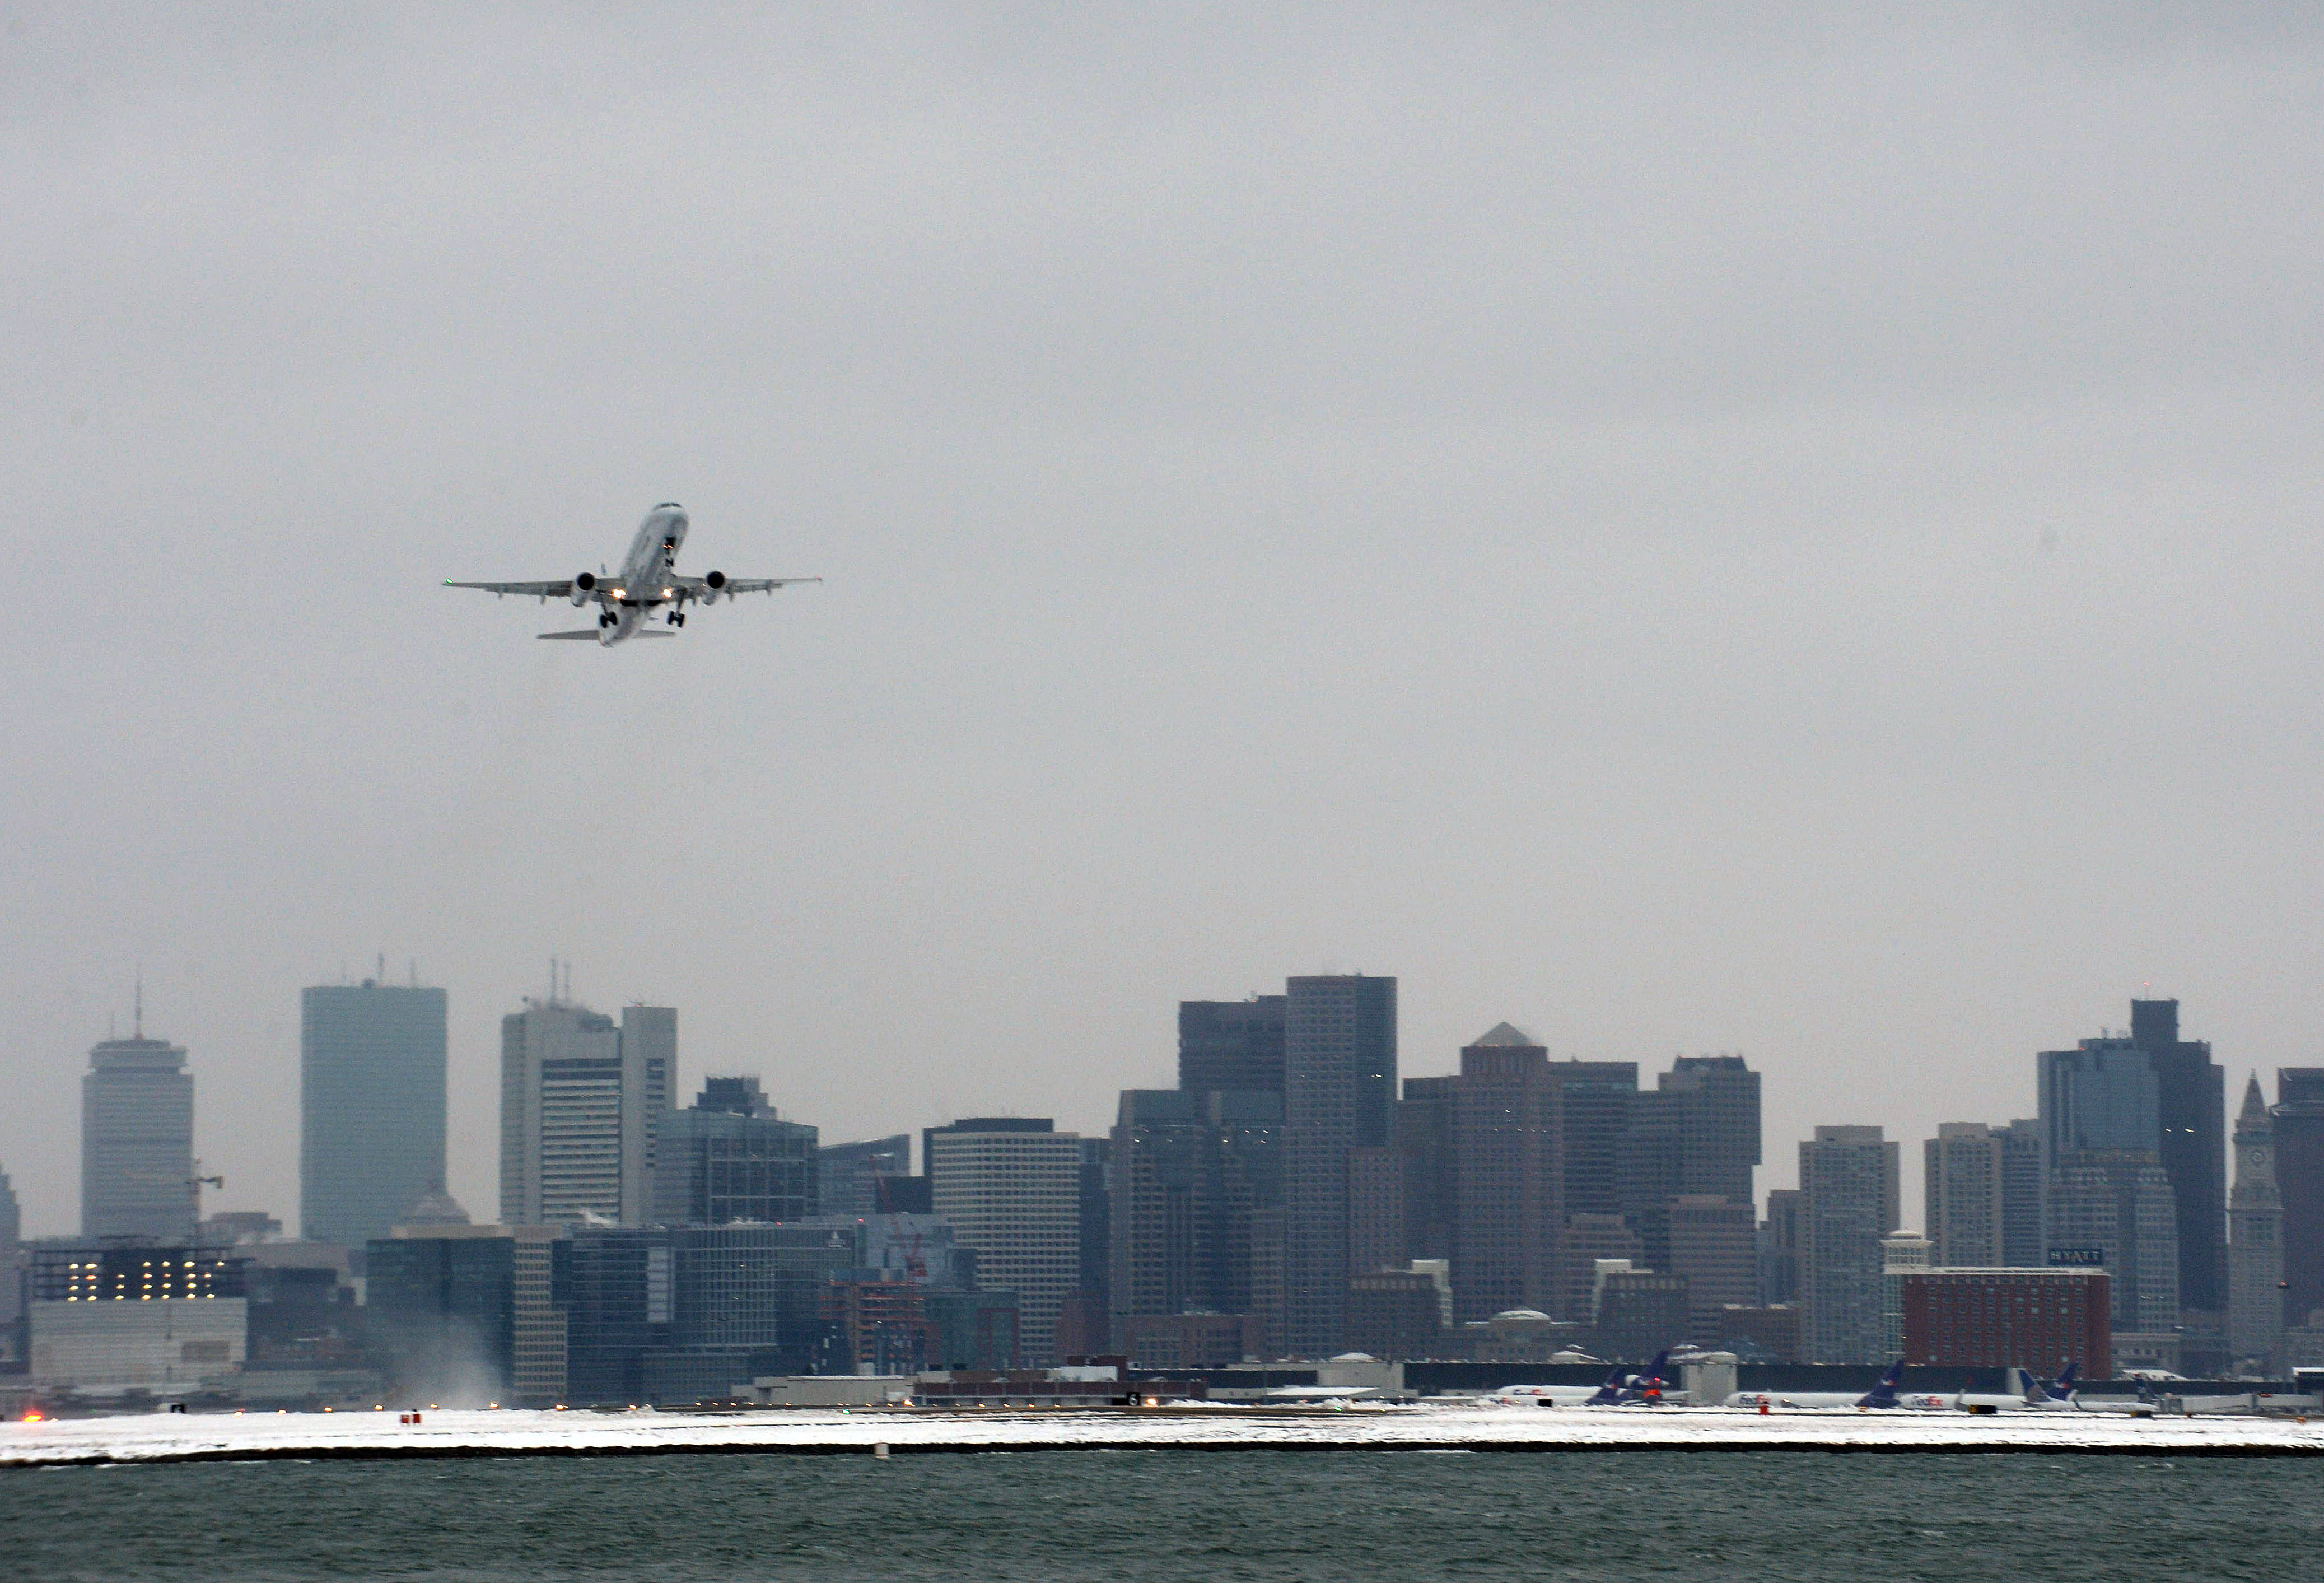 A flight takes off from Logan Airport in January 2015.